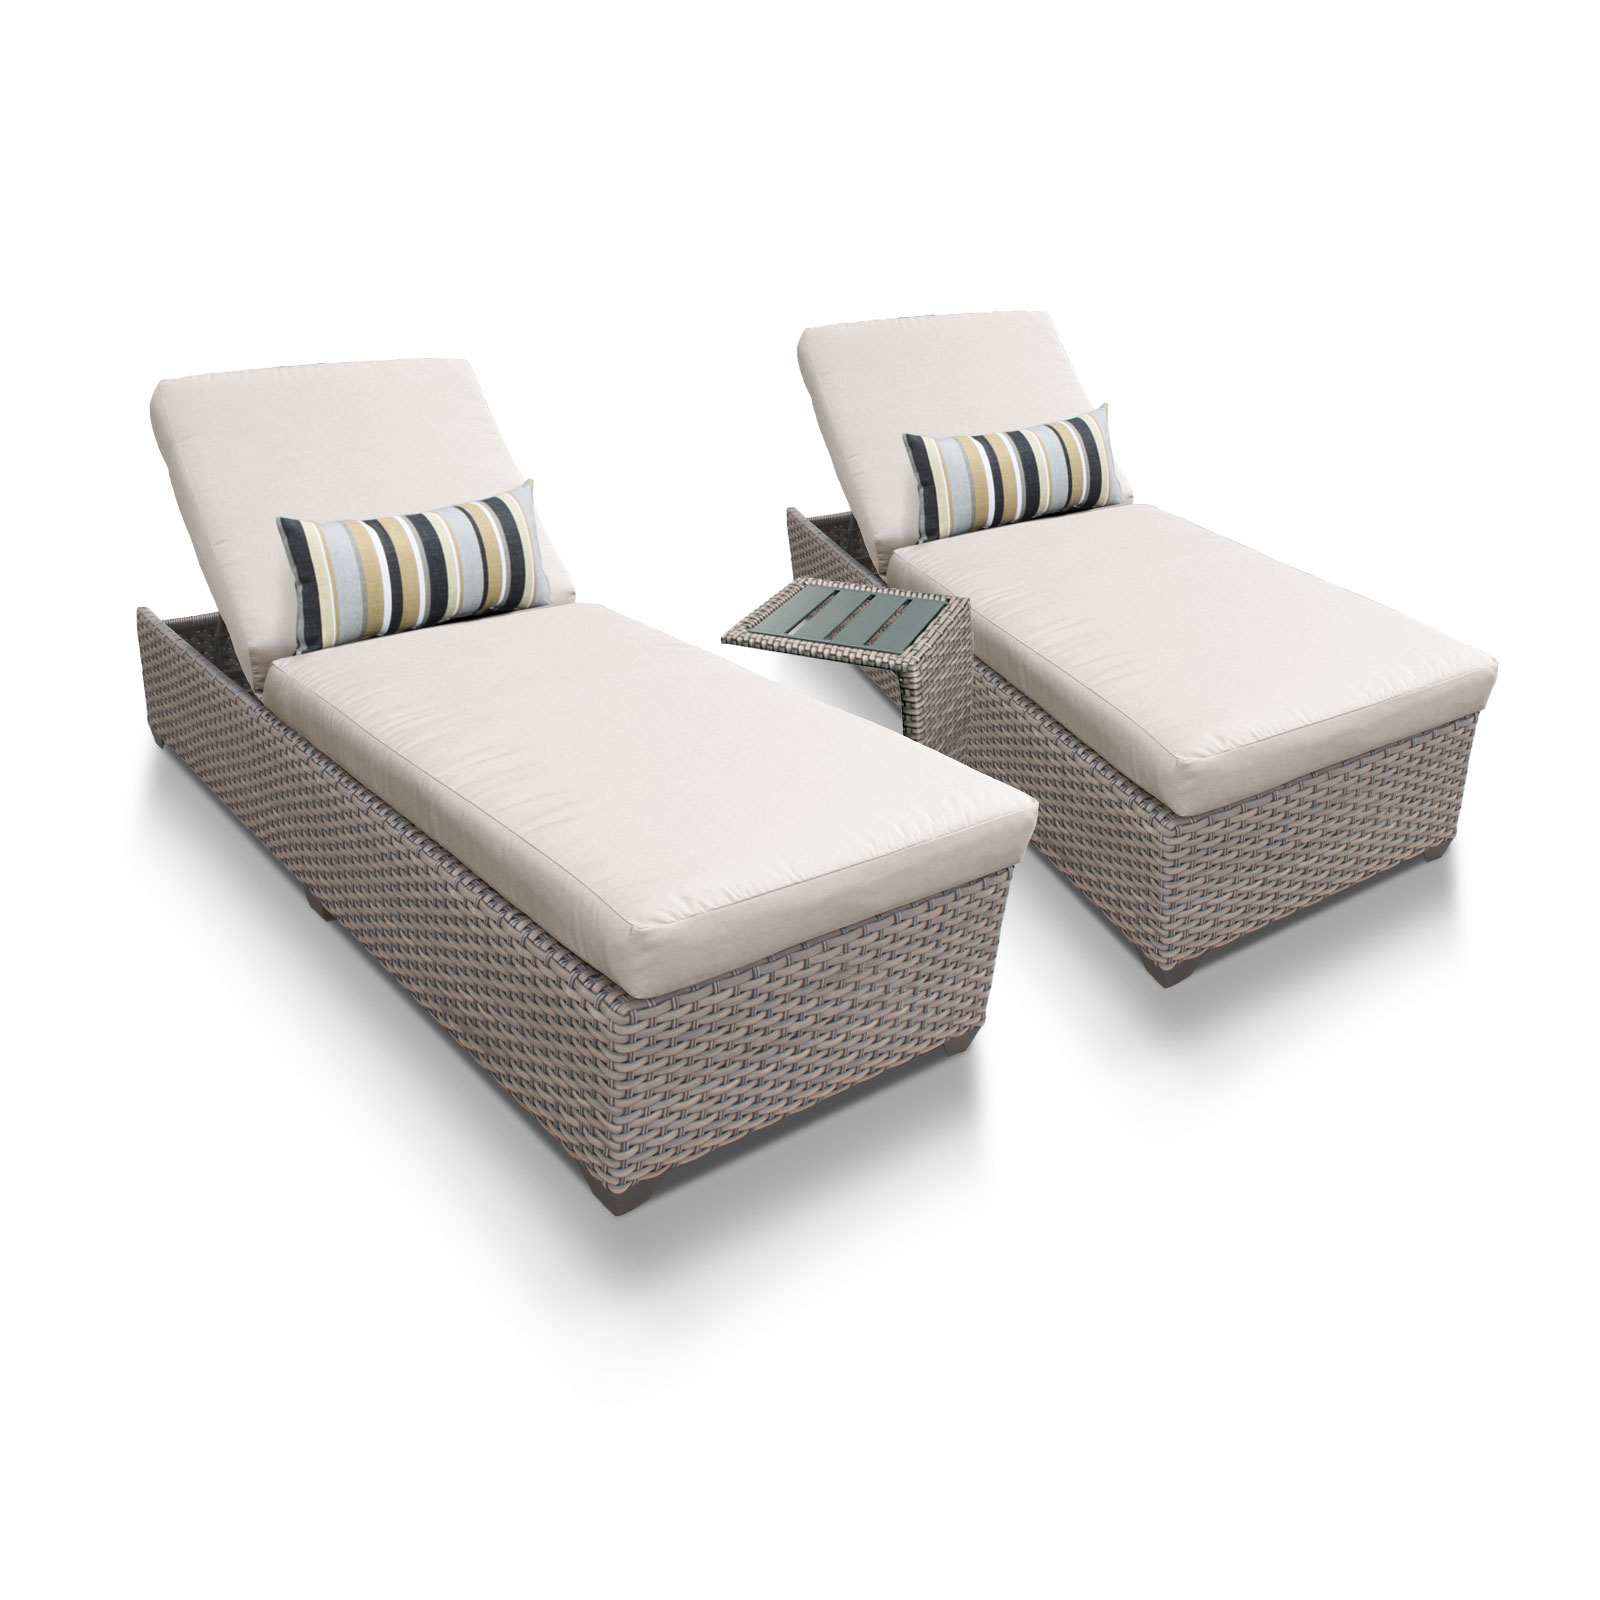 Harmony Chaise Set of 2 Outdoor Wicker Patio Furniture With Side Table